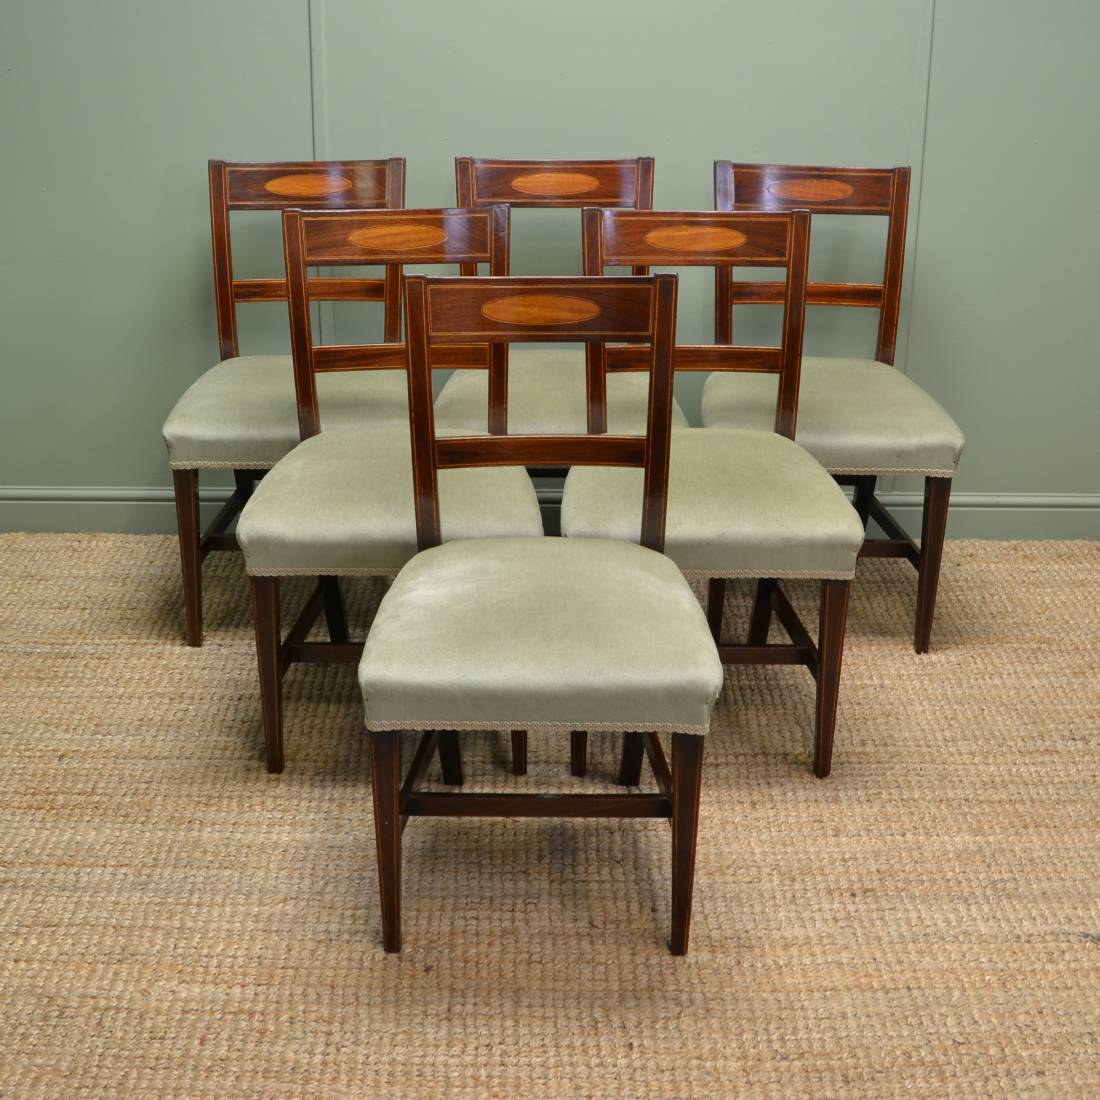 Antique Dining Chairs: Stunning Set Of Six Regency Inlaid Mahogany Antique Dining